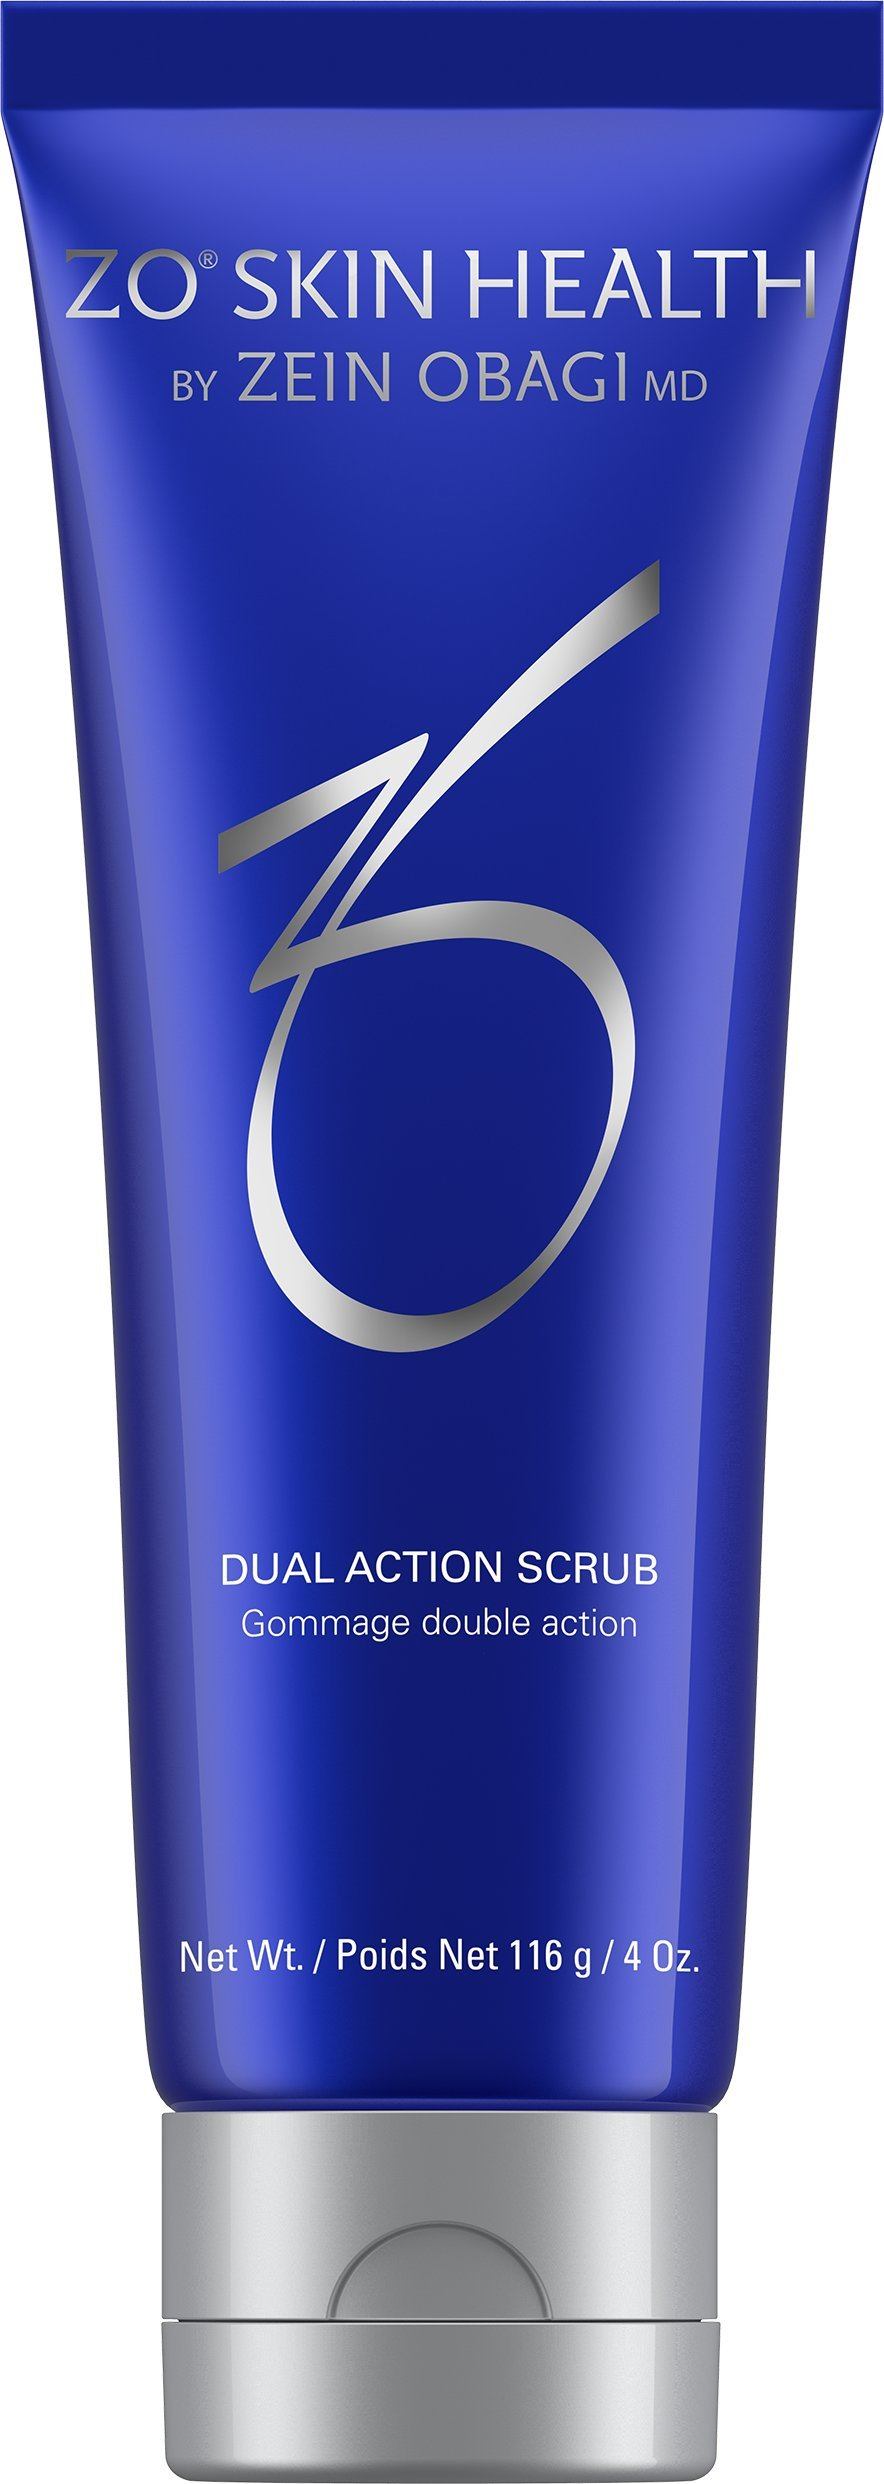 Dual Action Scrub, Gommage Double Action 4oz/116 g